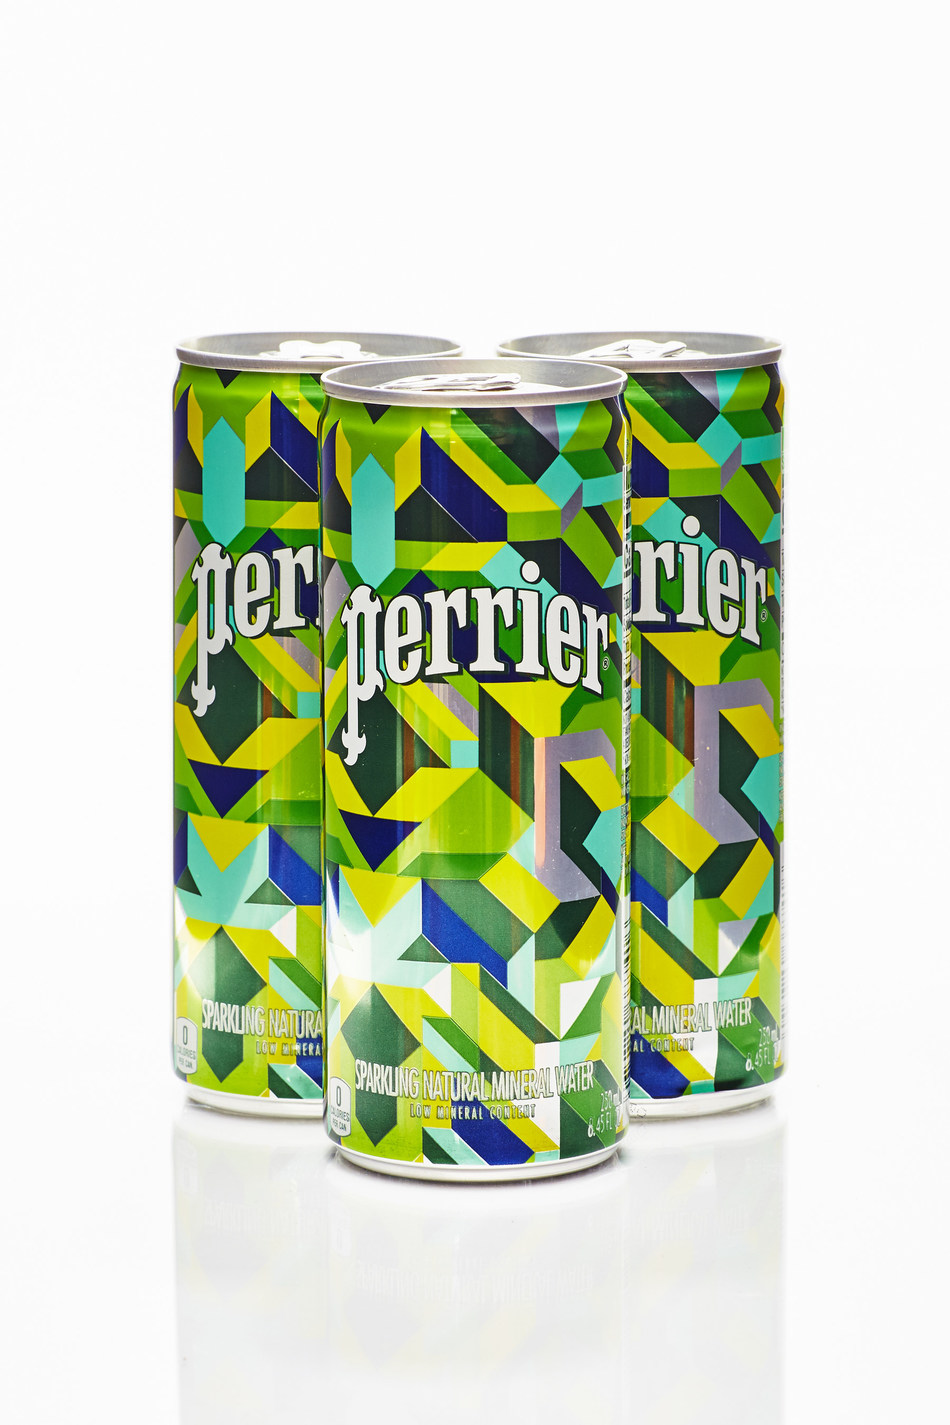 Perrier® Sparkling Mineral Water celebrates the launch of its limited-edition packaging, featuring original designs by artist Eric Rieger, also known as HOTTEA. (Credit: Patrick MacLeod for Perrier Sparkling Natural Mineral Water)